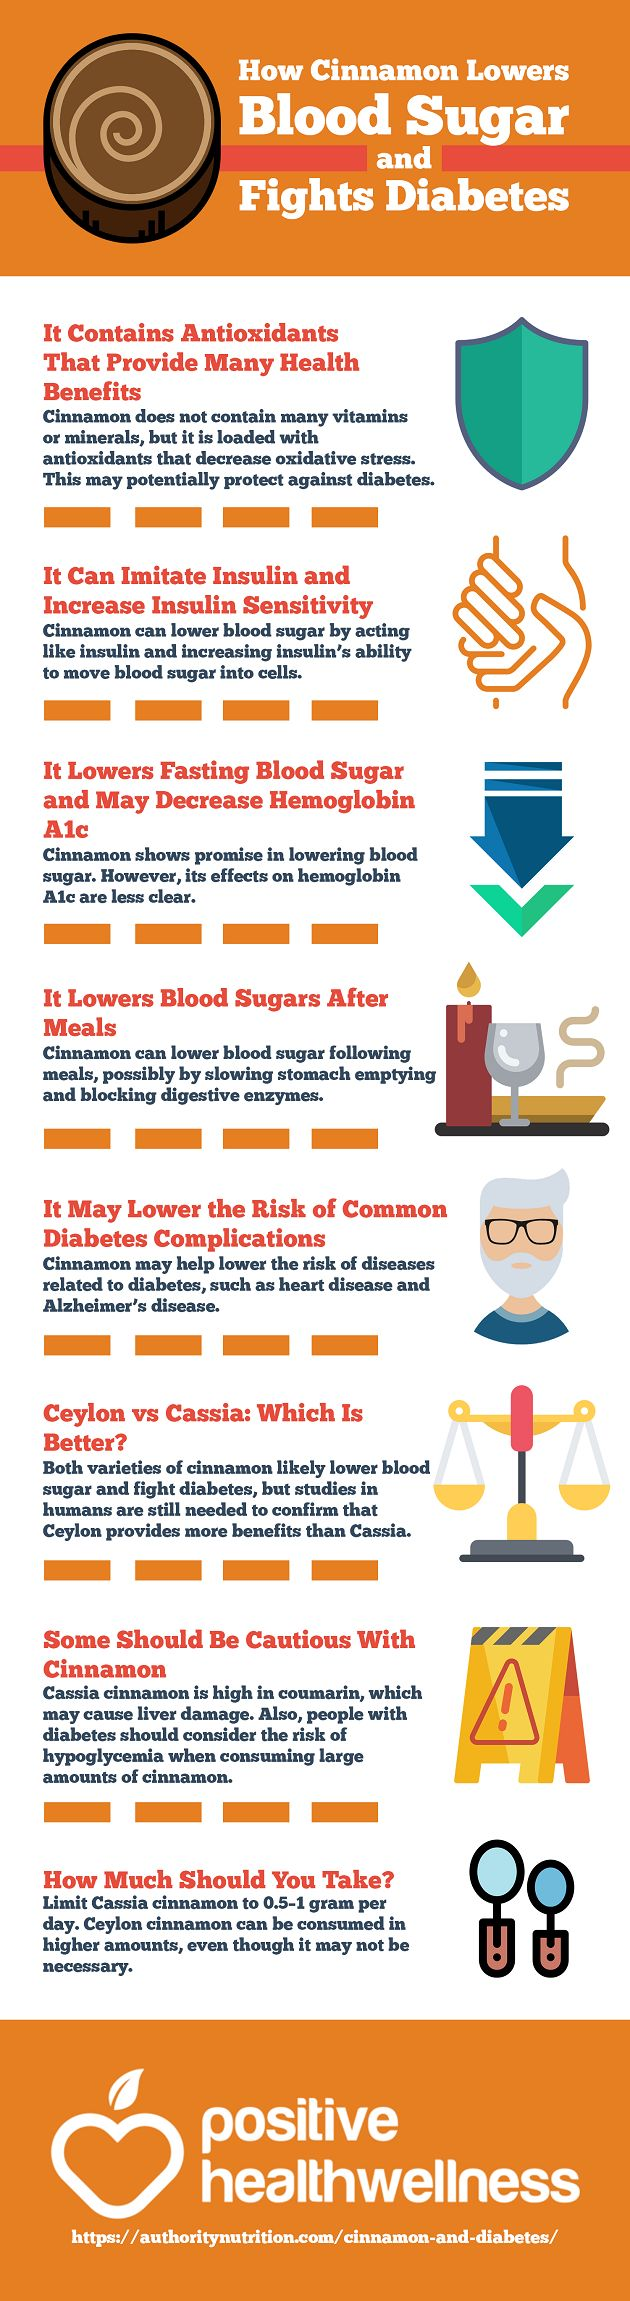 How Cinnamon Lowers Blood Sugar and Fights Diabetes – Positive Health Wellness Infographic